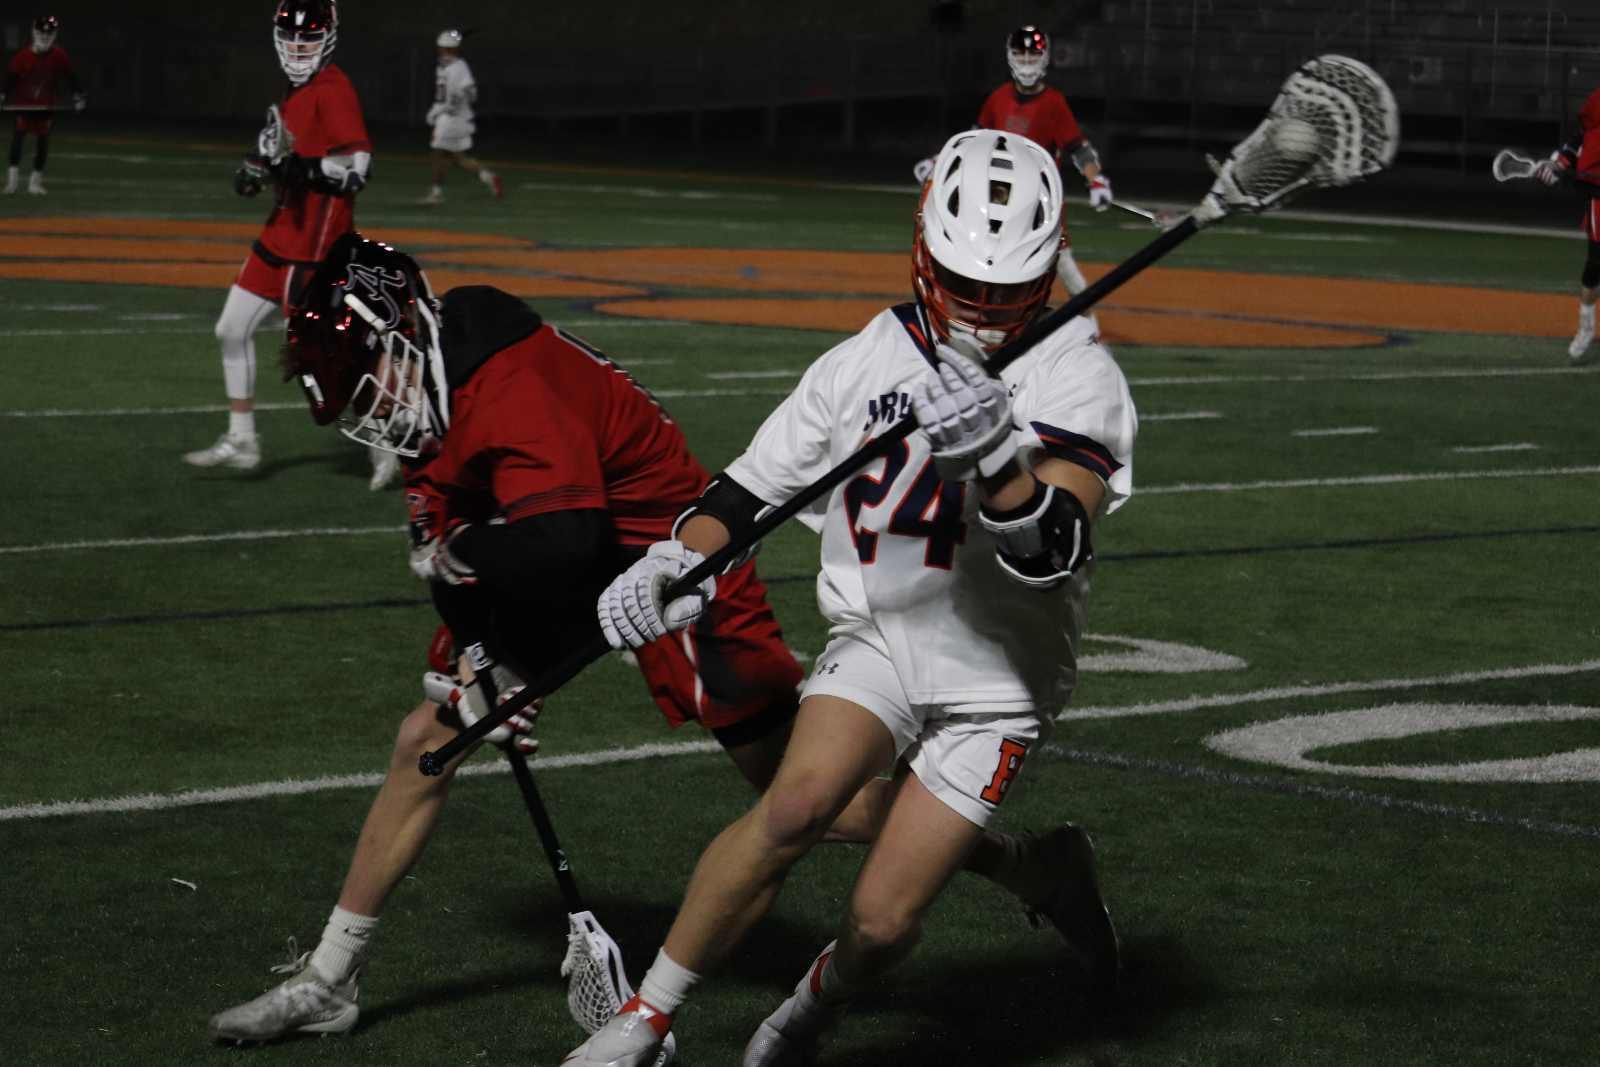 Watch LIVE: Boys Lacrosse home games